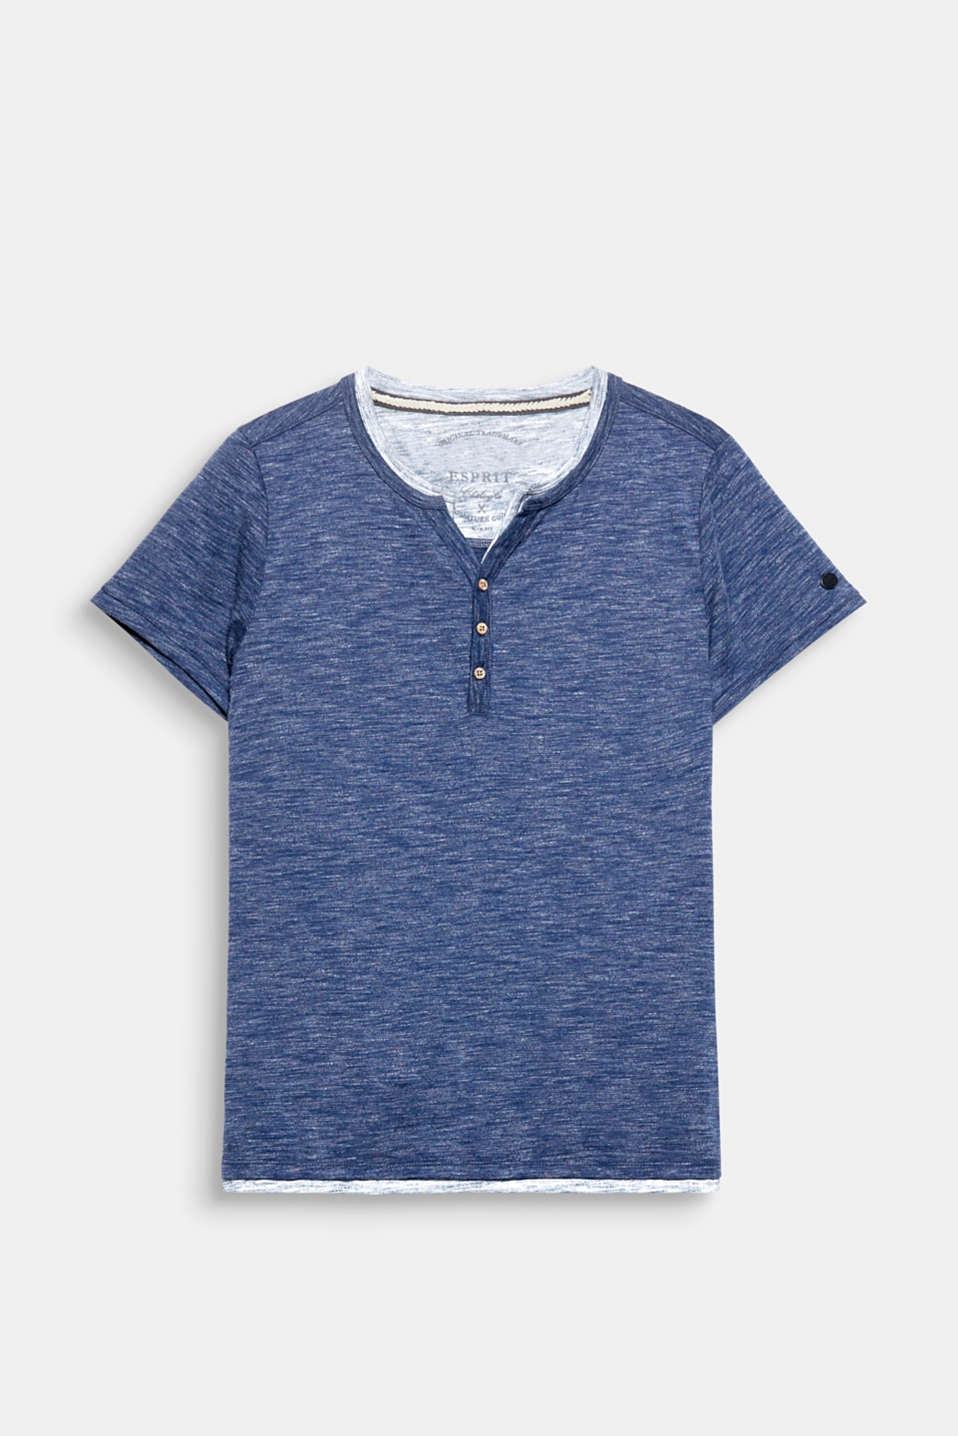 Henley T-shirt in a layered design, made of melange jersey